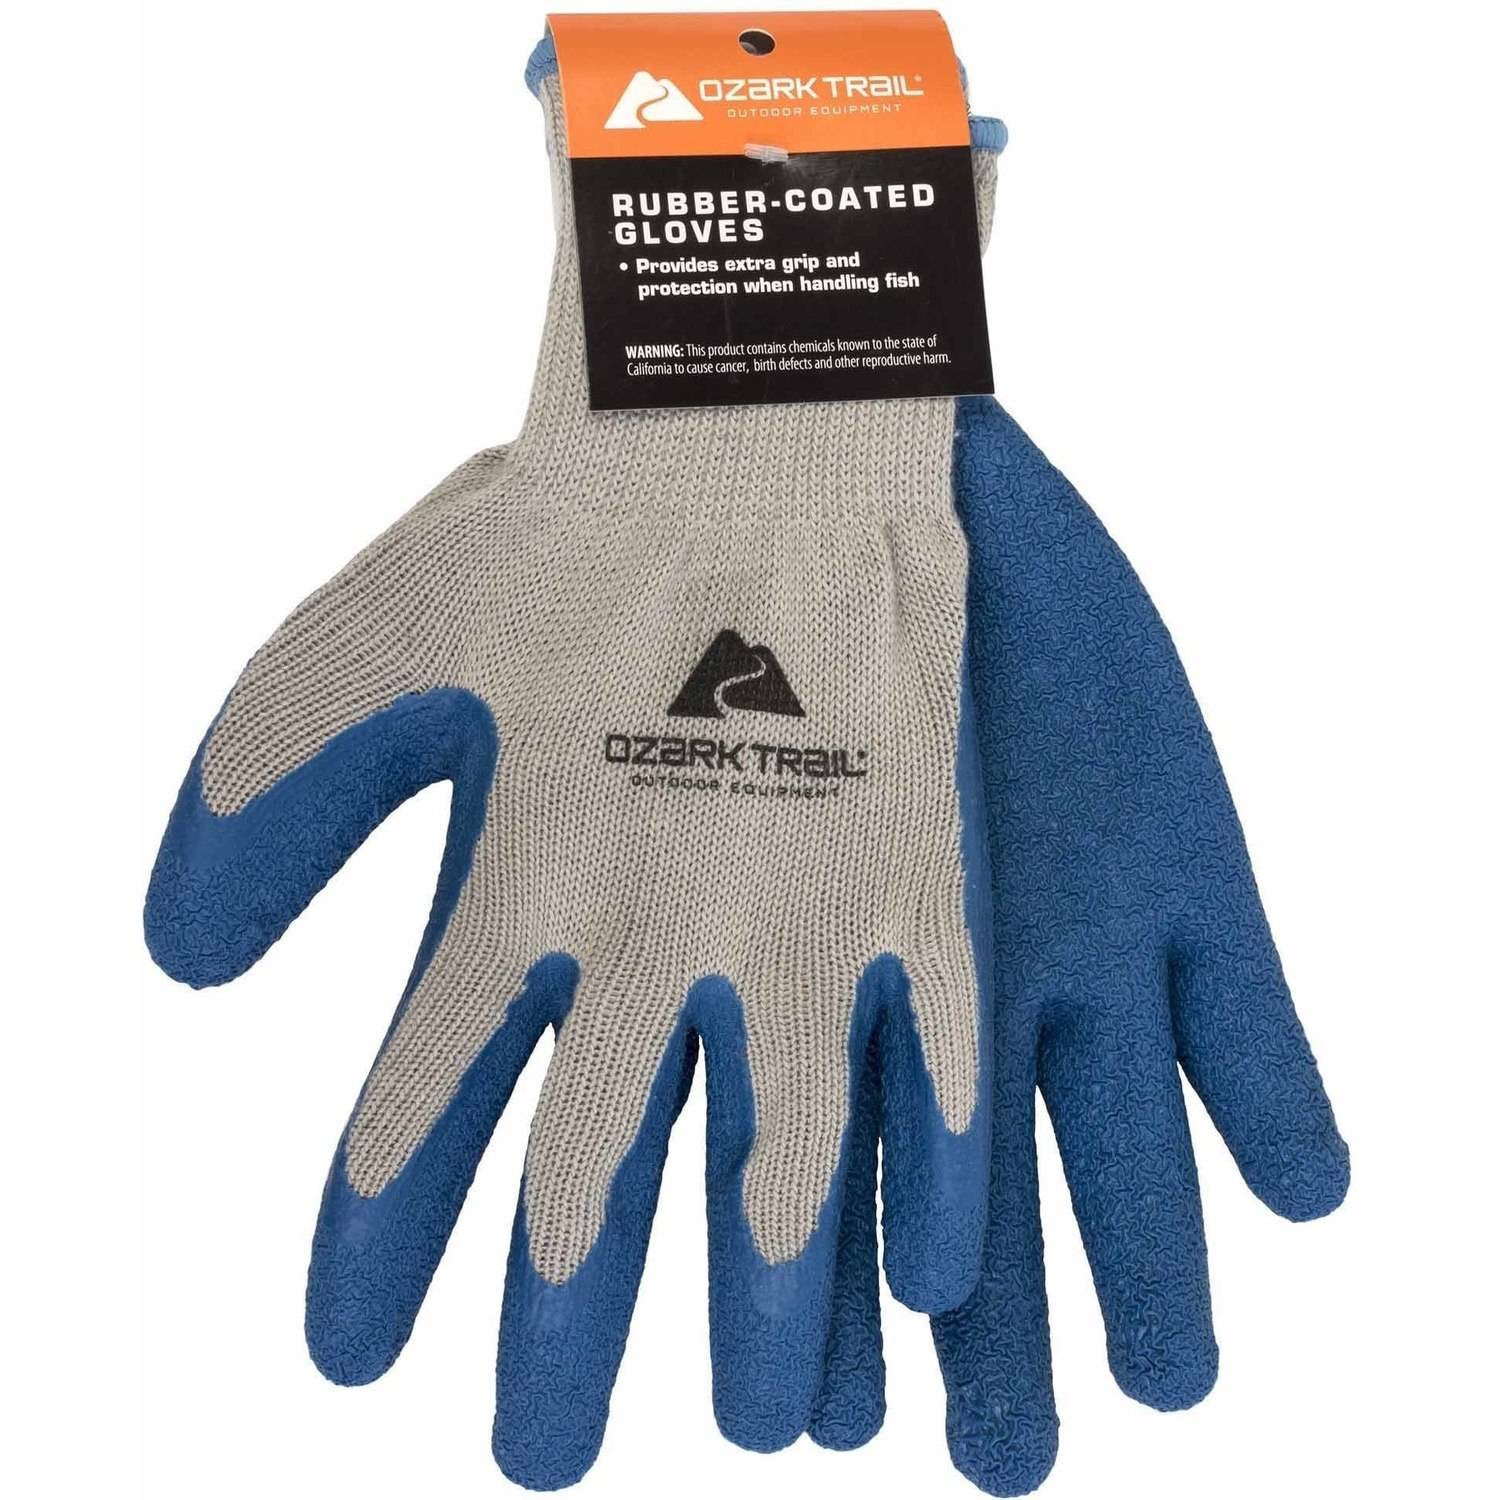 Ozark Trail Outdoor Rubber-Coated Fishing Gloves, Black/Gray